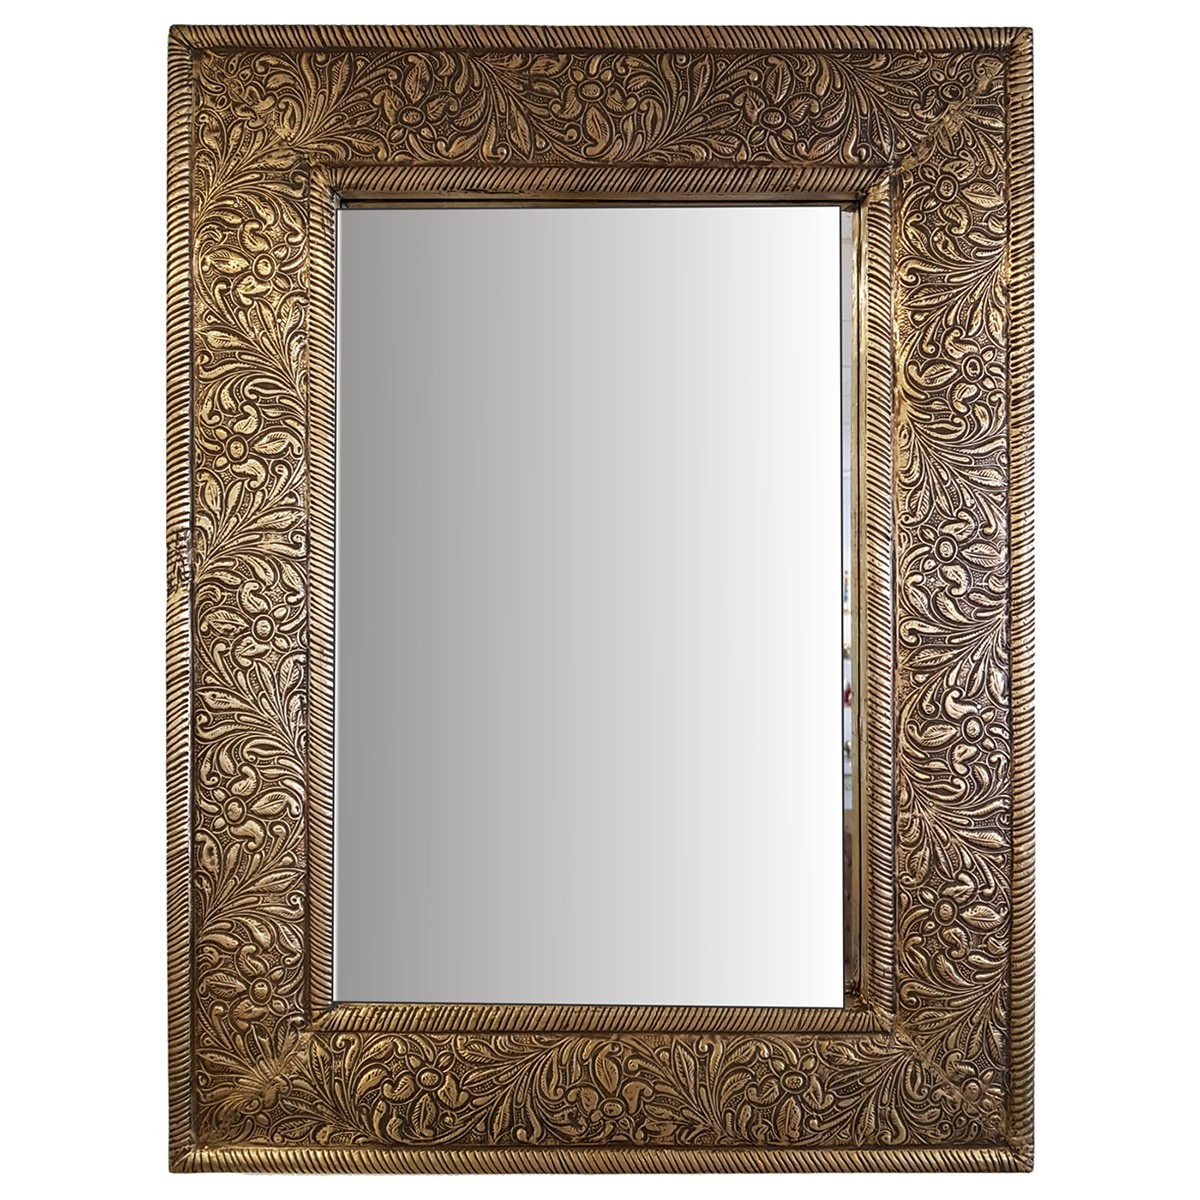 Senza Handcrafted Wooden Frame Wall Mirror, 61cm